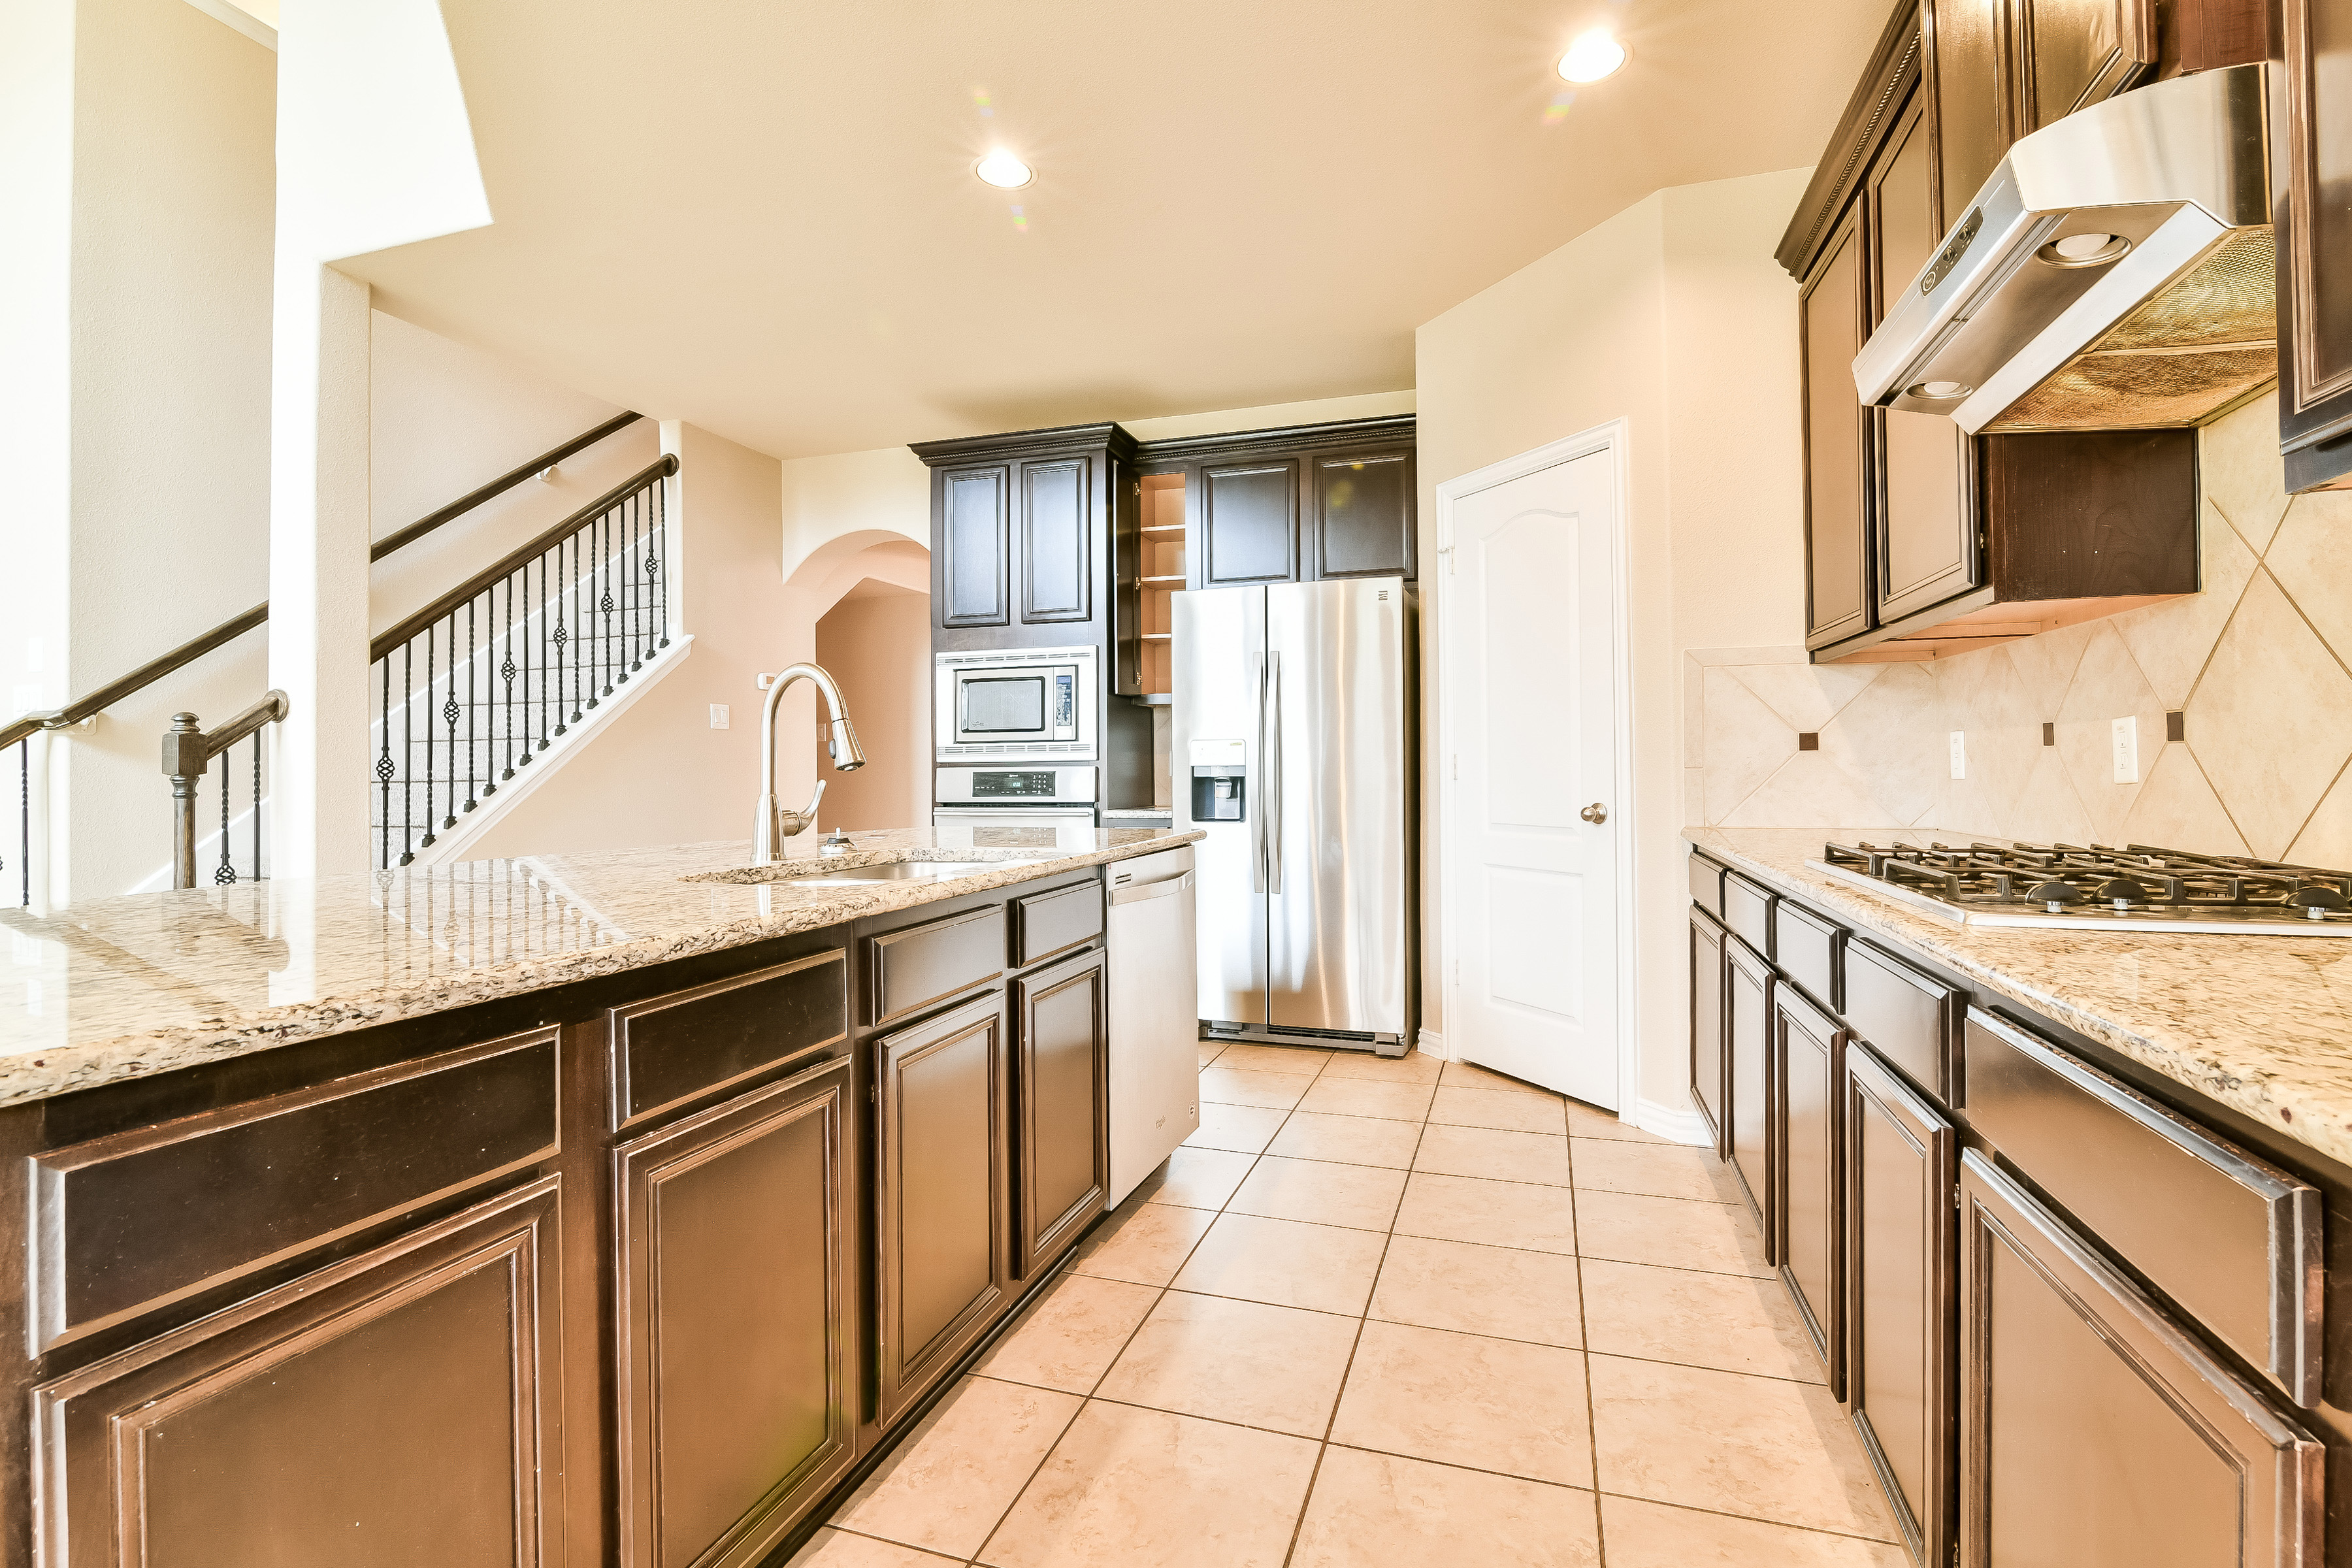 Photo of 9018 Springcroft Court, Tomball, TX, 77375